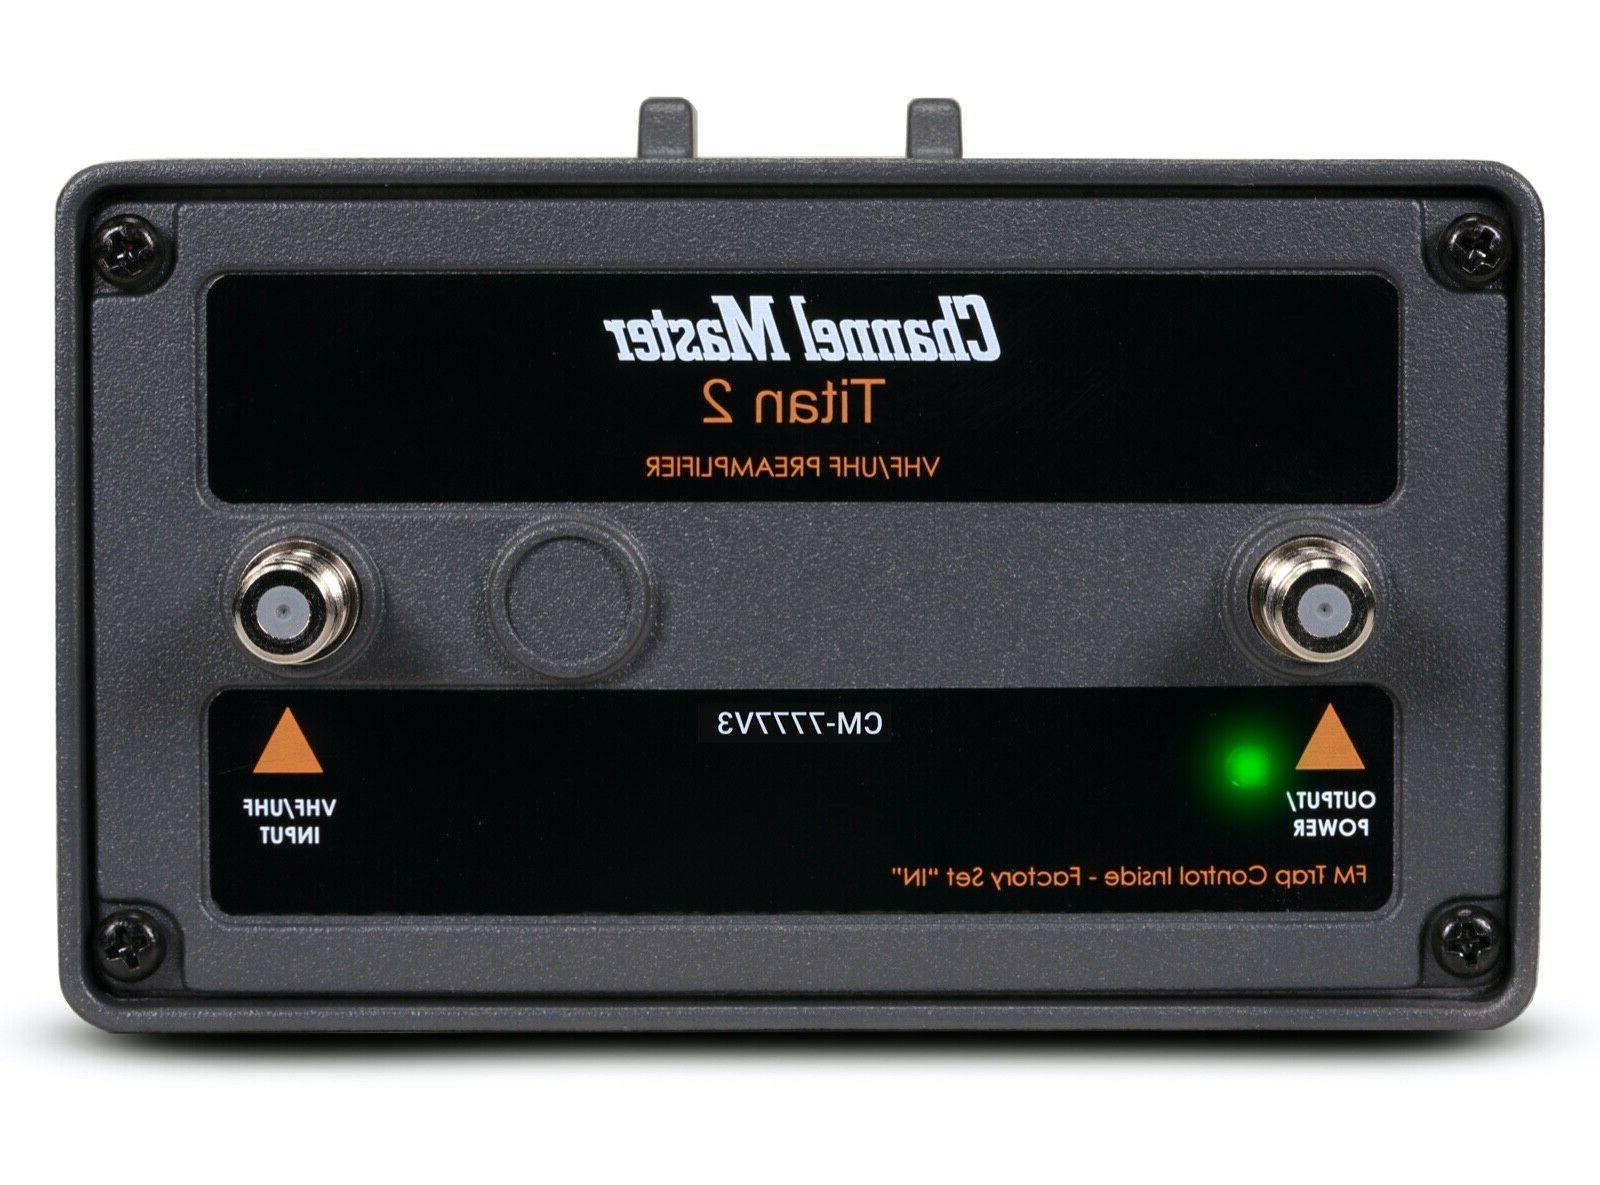 titan 2 high gain tv antenna preamplifier